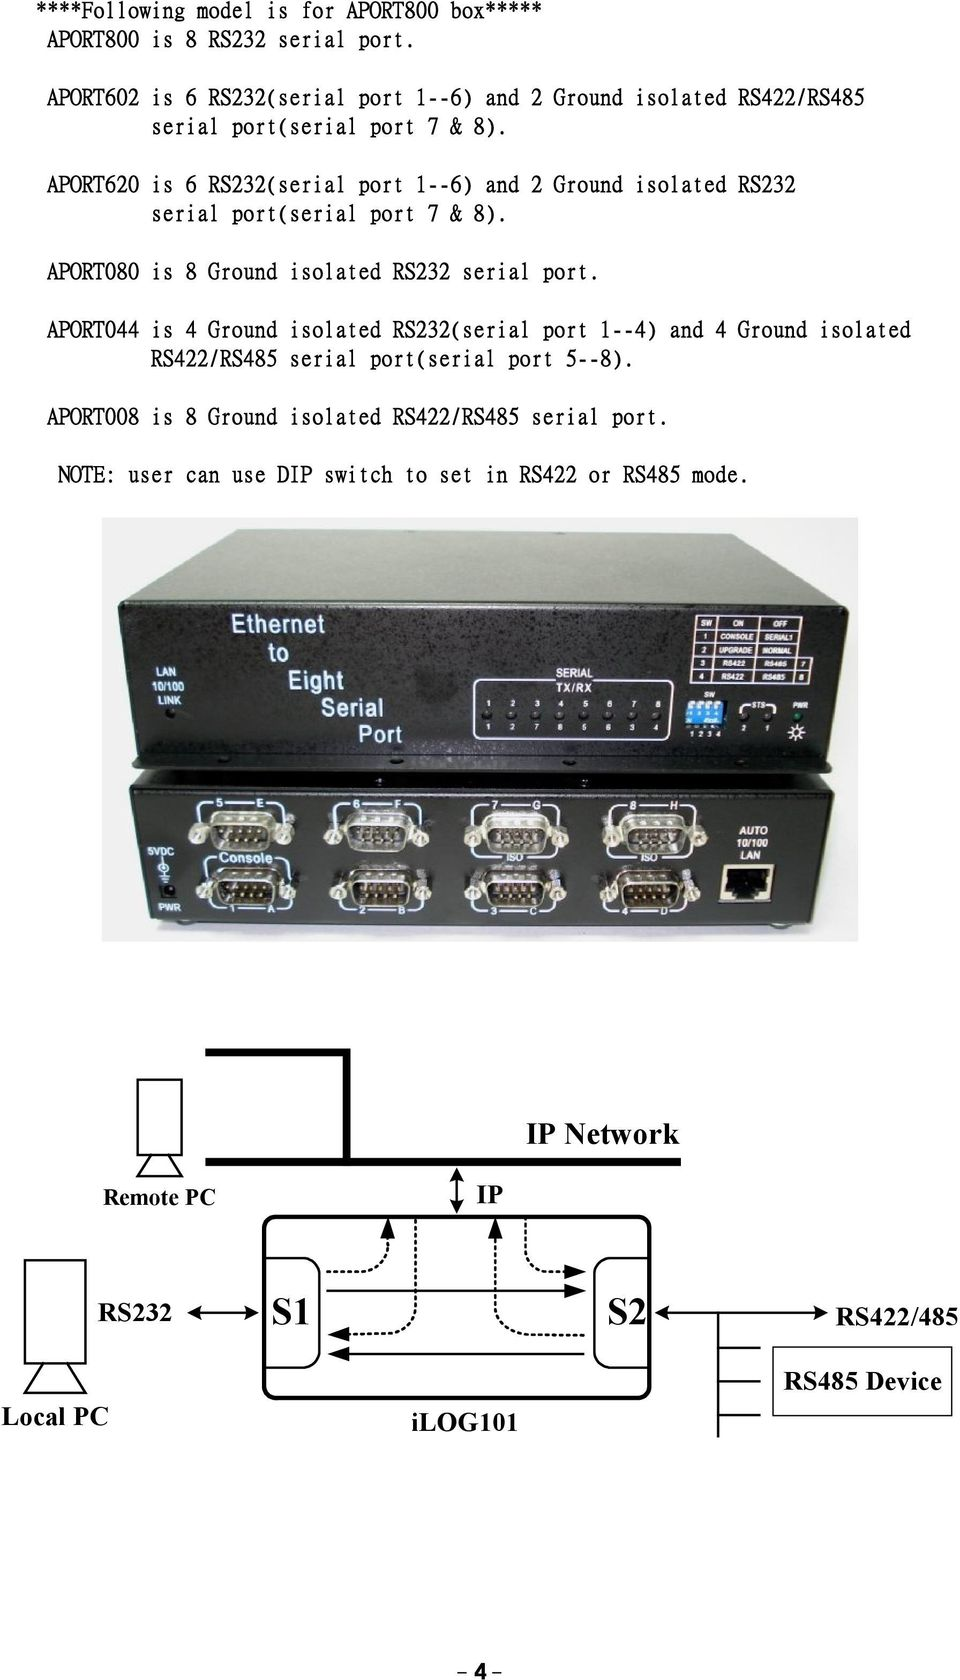 APORT620 is 6 RS232(serial port 1--6) and 2 Ground isolated RS232 serial port(serial port 7 & 8). APORT080 is 8 Ground isolated RS232 serial port.